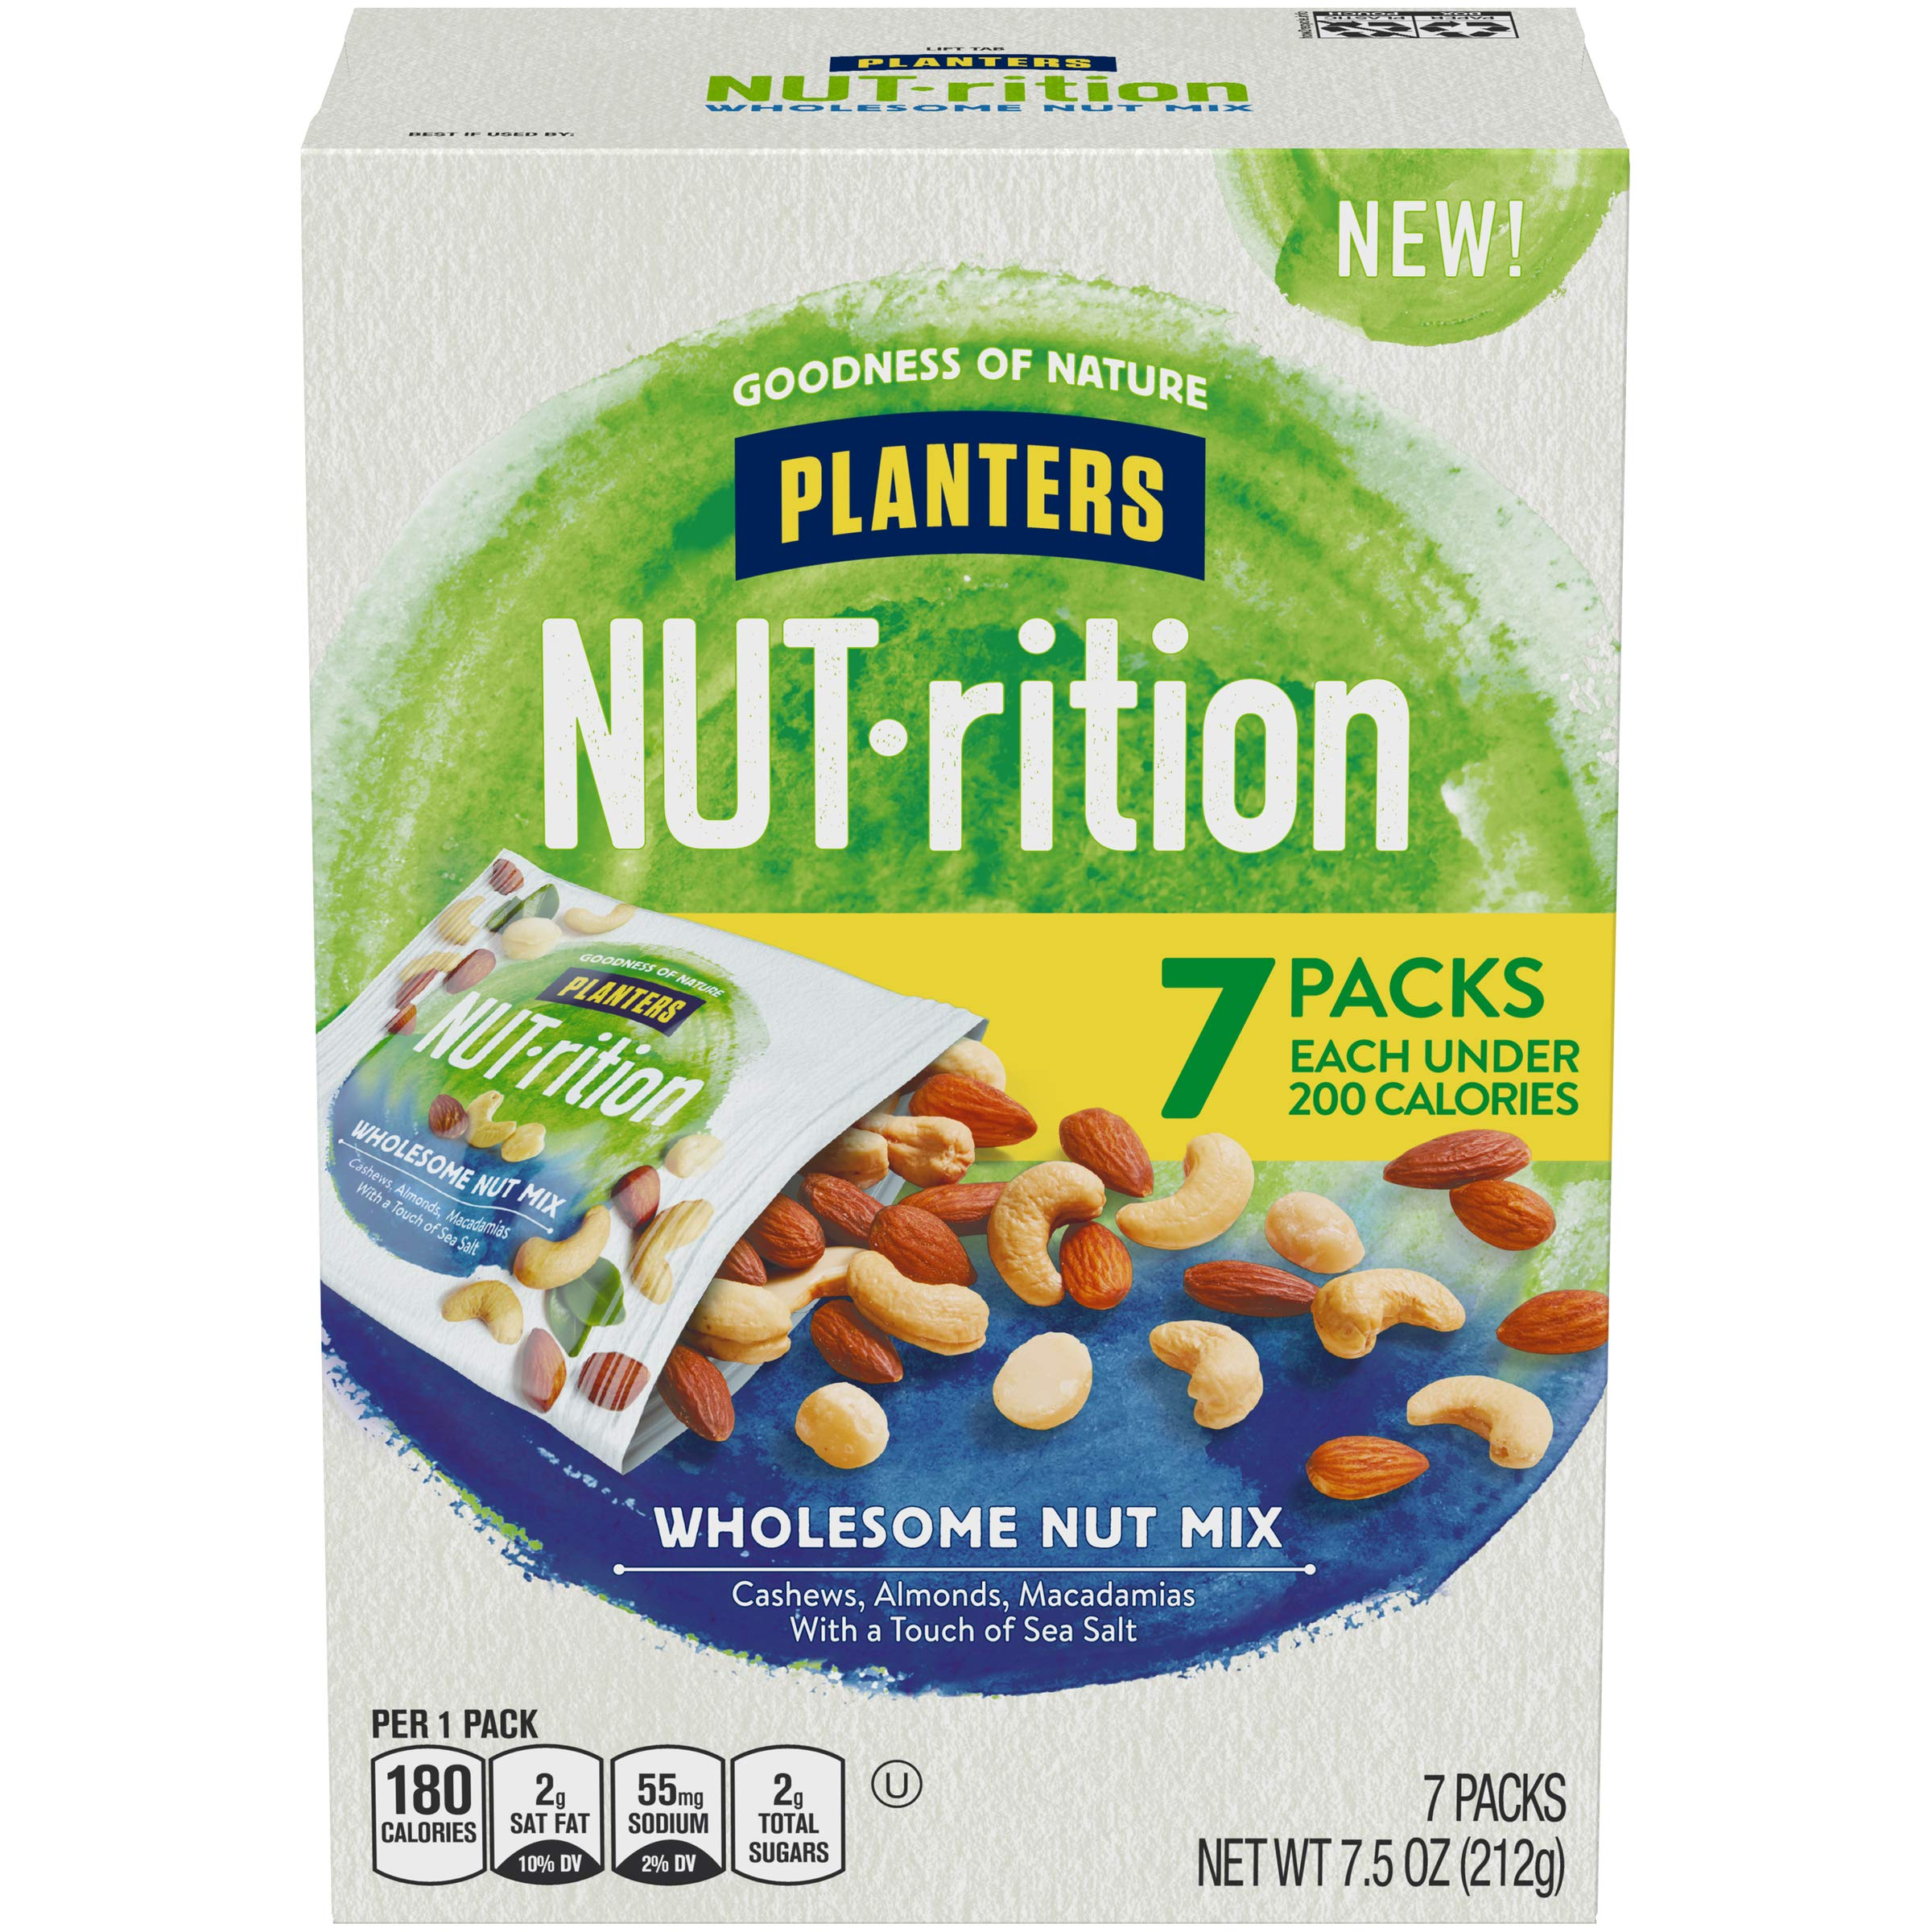 Planters NUTrition Wholesome Nut Mix, 1.07 Oz, Pack of 7 by NUTrition